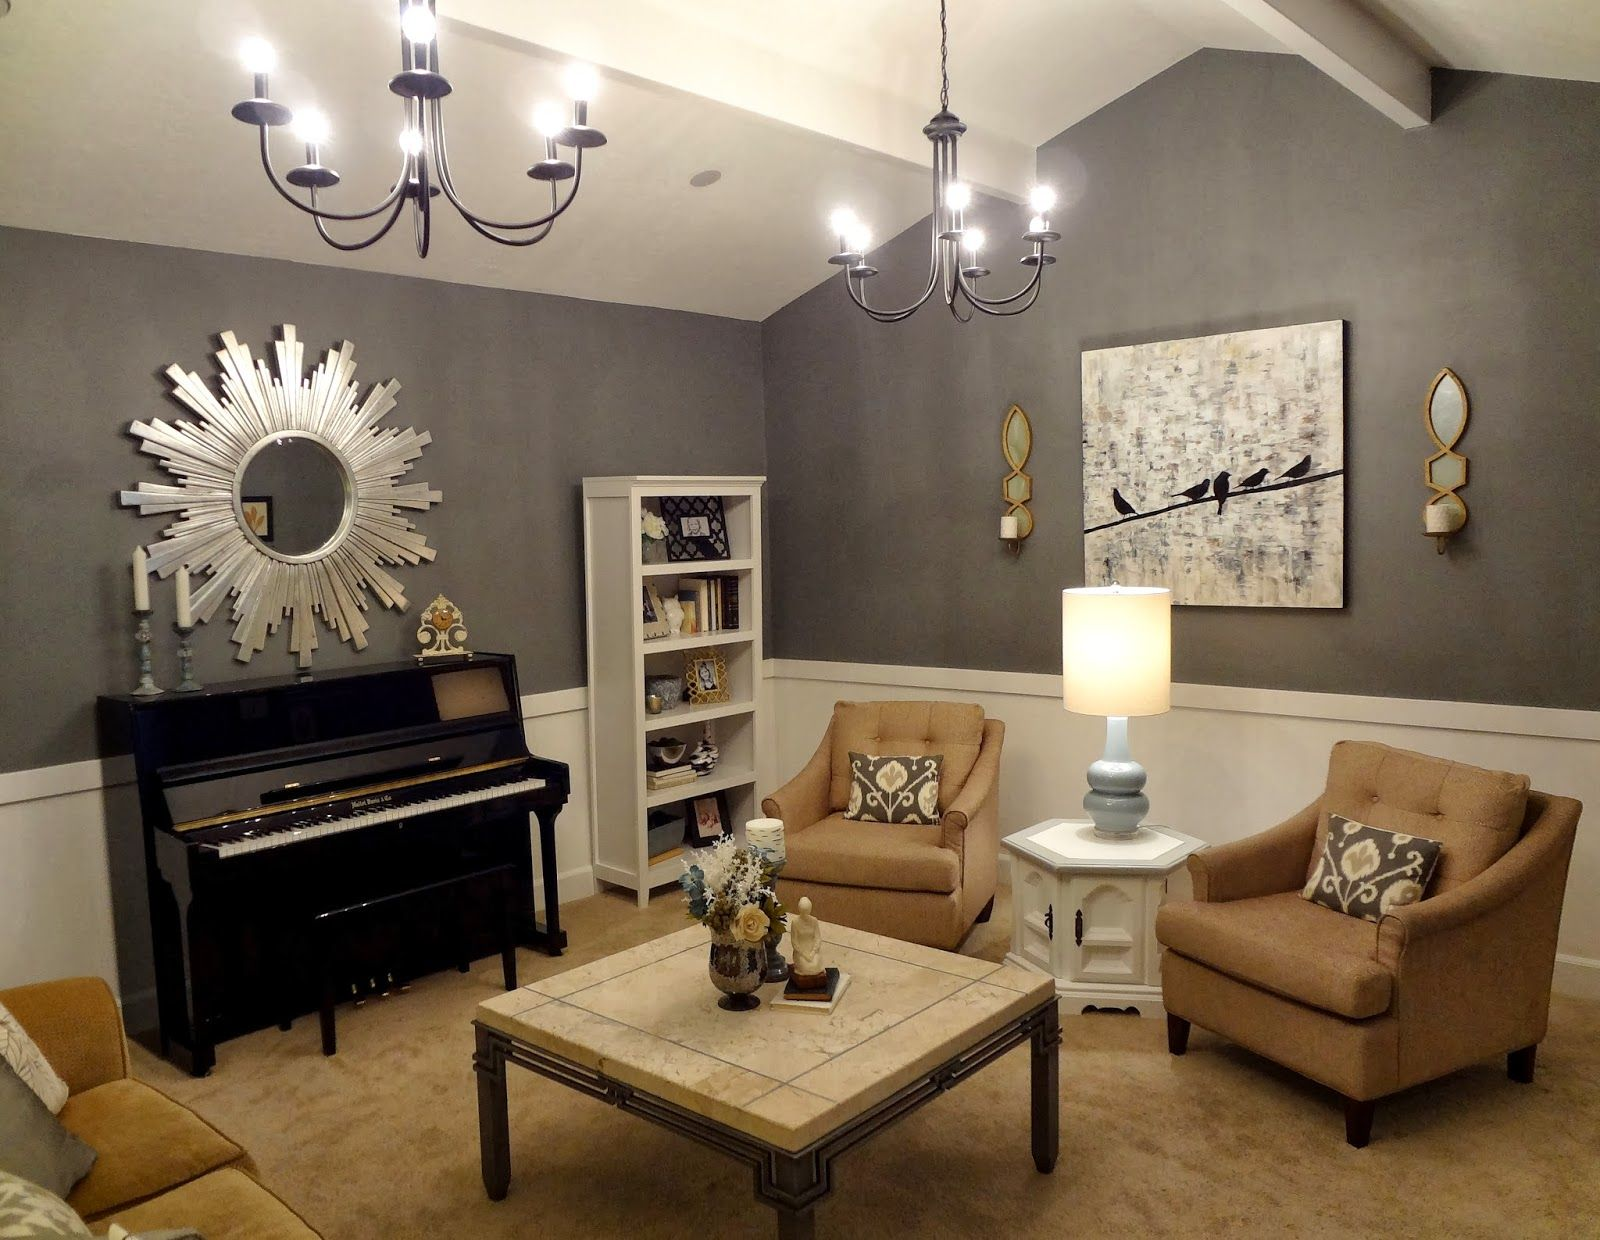 Living room design with upright piano upright piano for Piano room decor